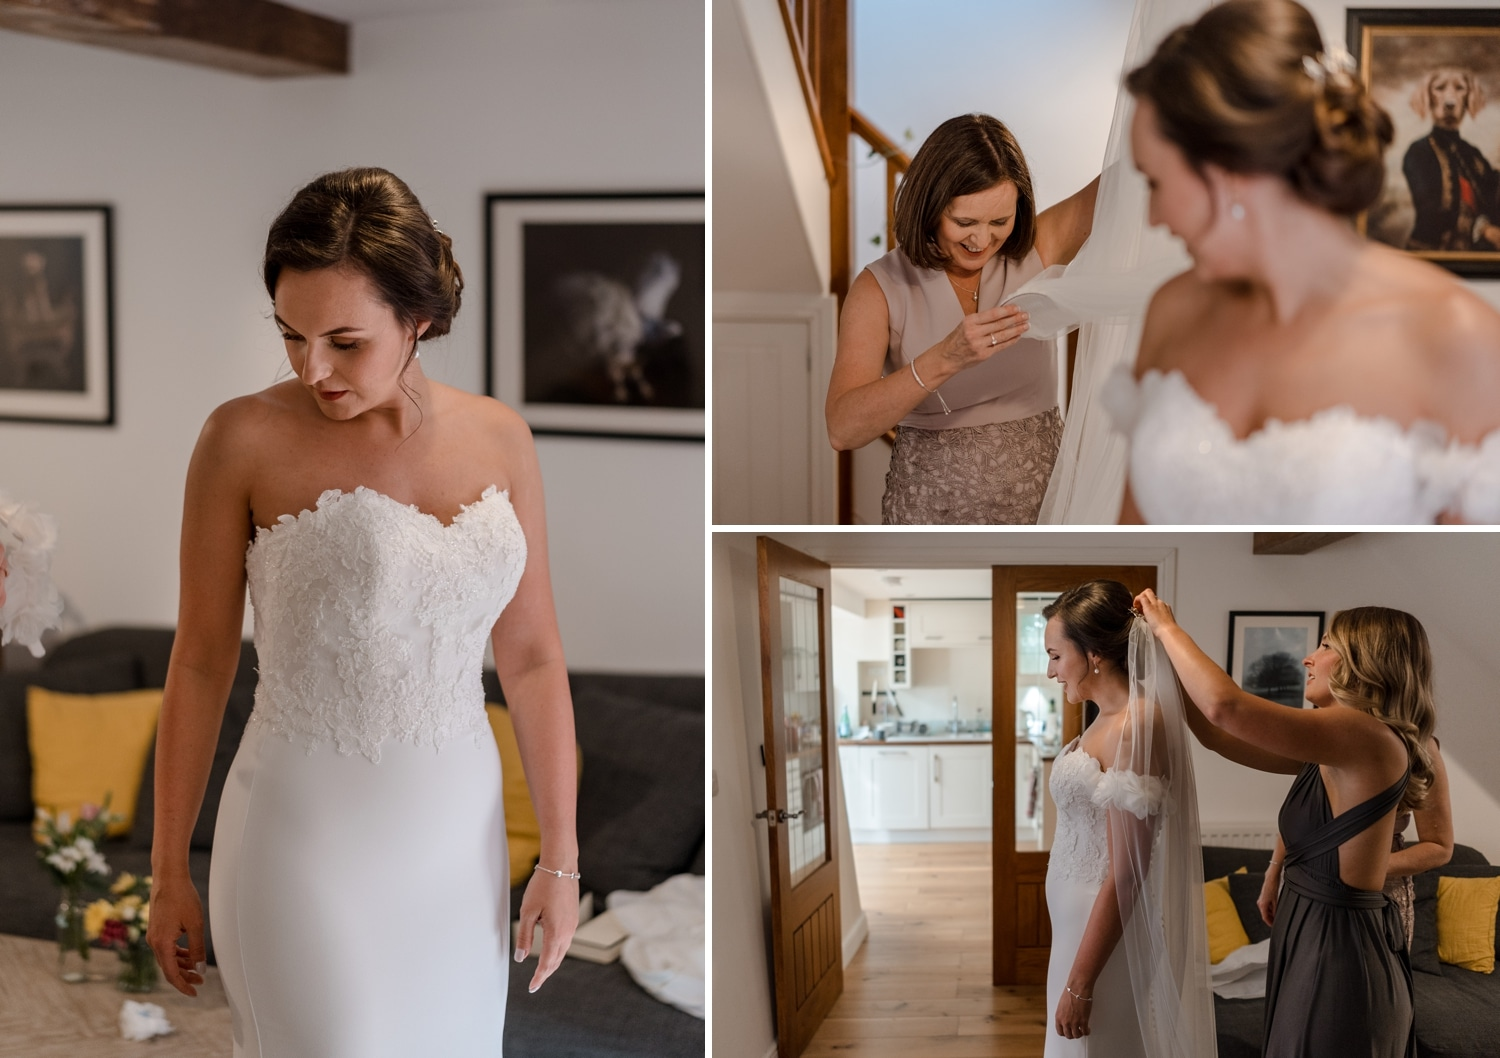 Bridal preparation in Northleach